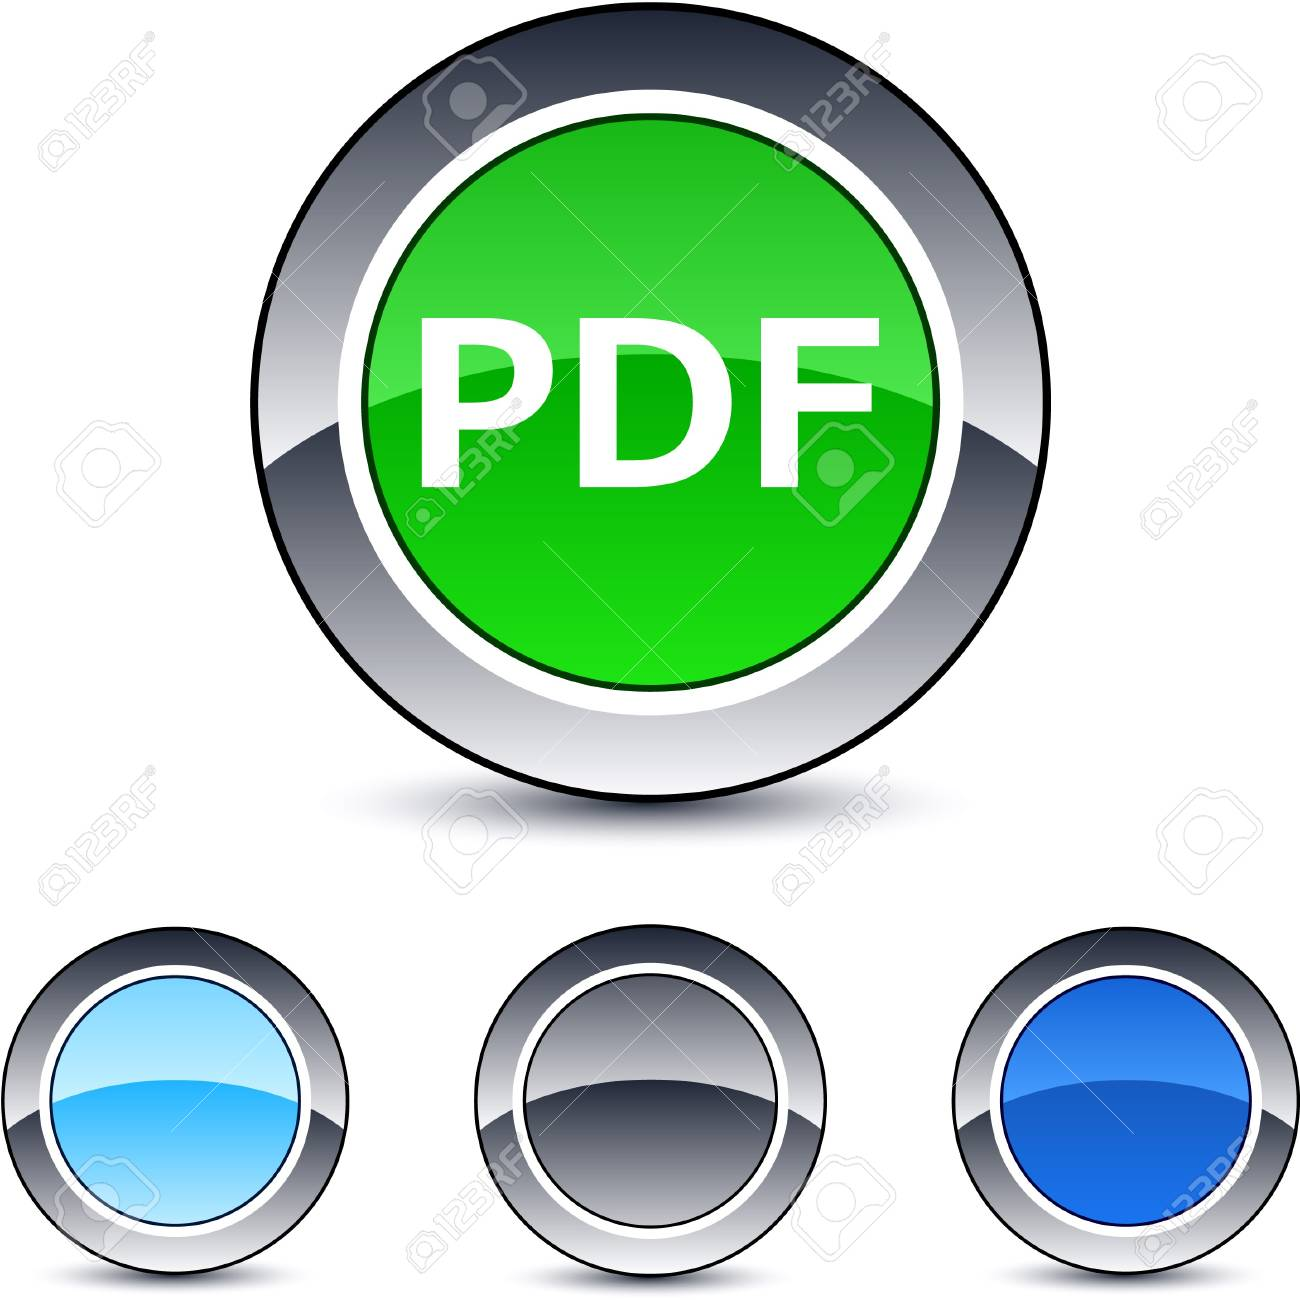 PDF glossy round web buttons. Stock Vector - 7076458